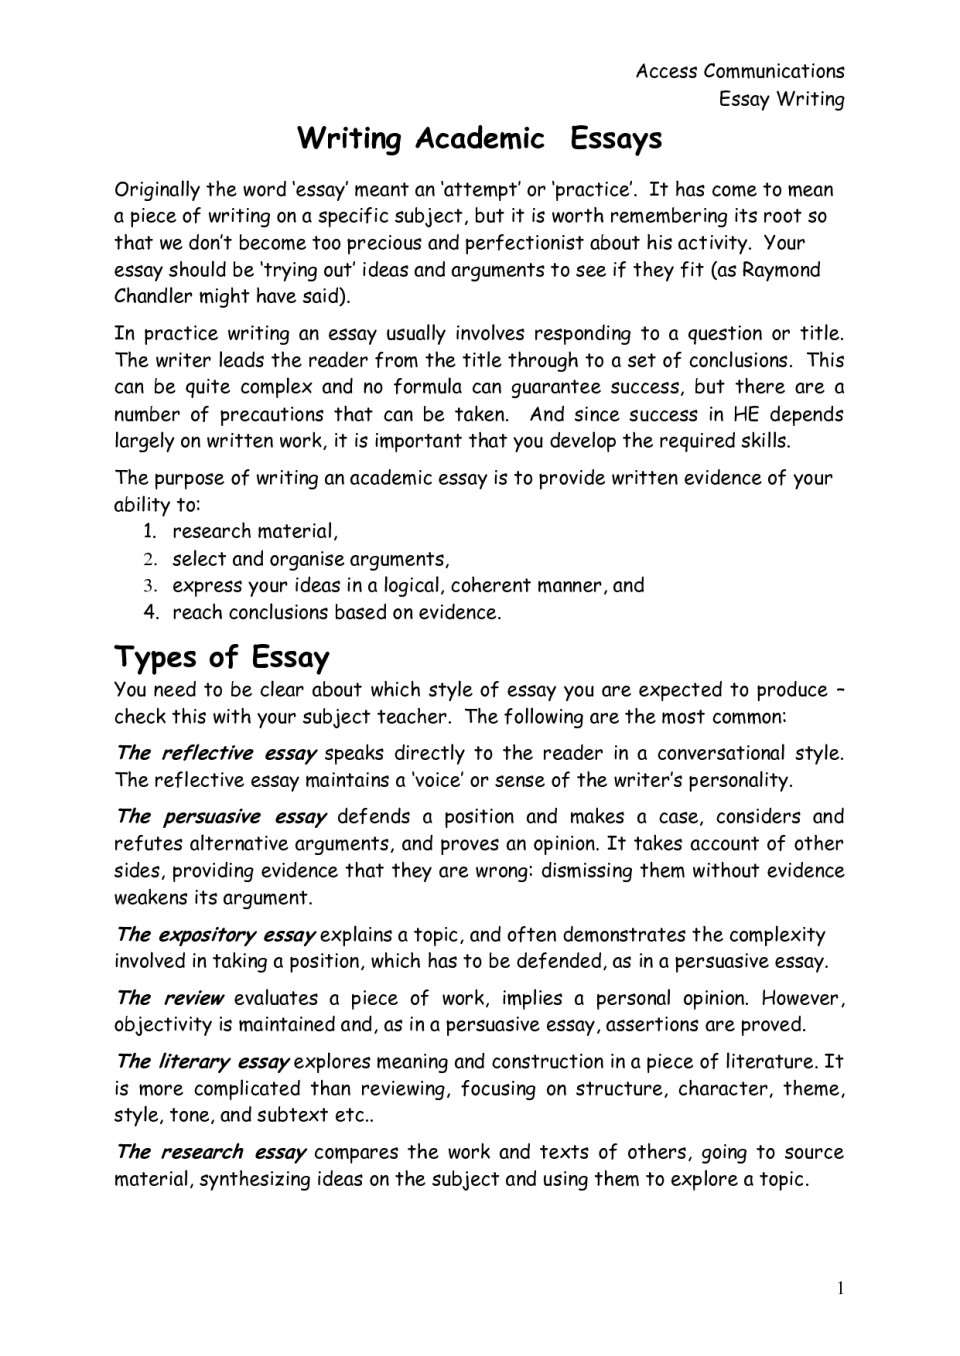 019 Write My Essay For Me Example Surprising App Free Uk 960